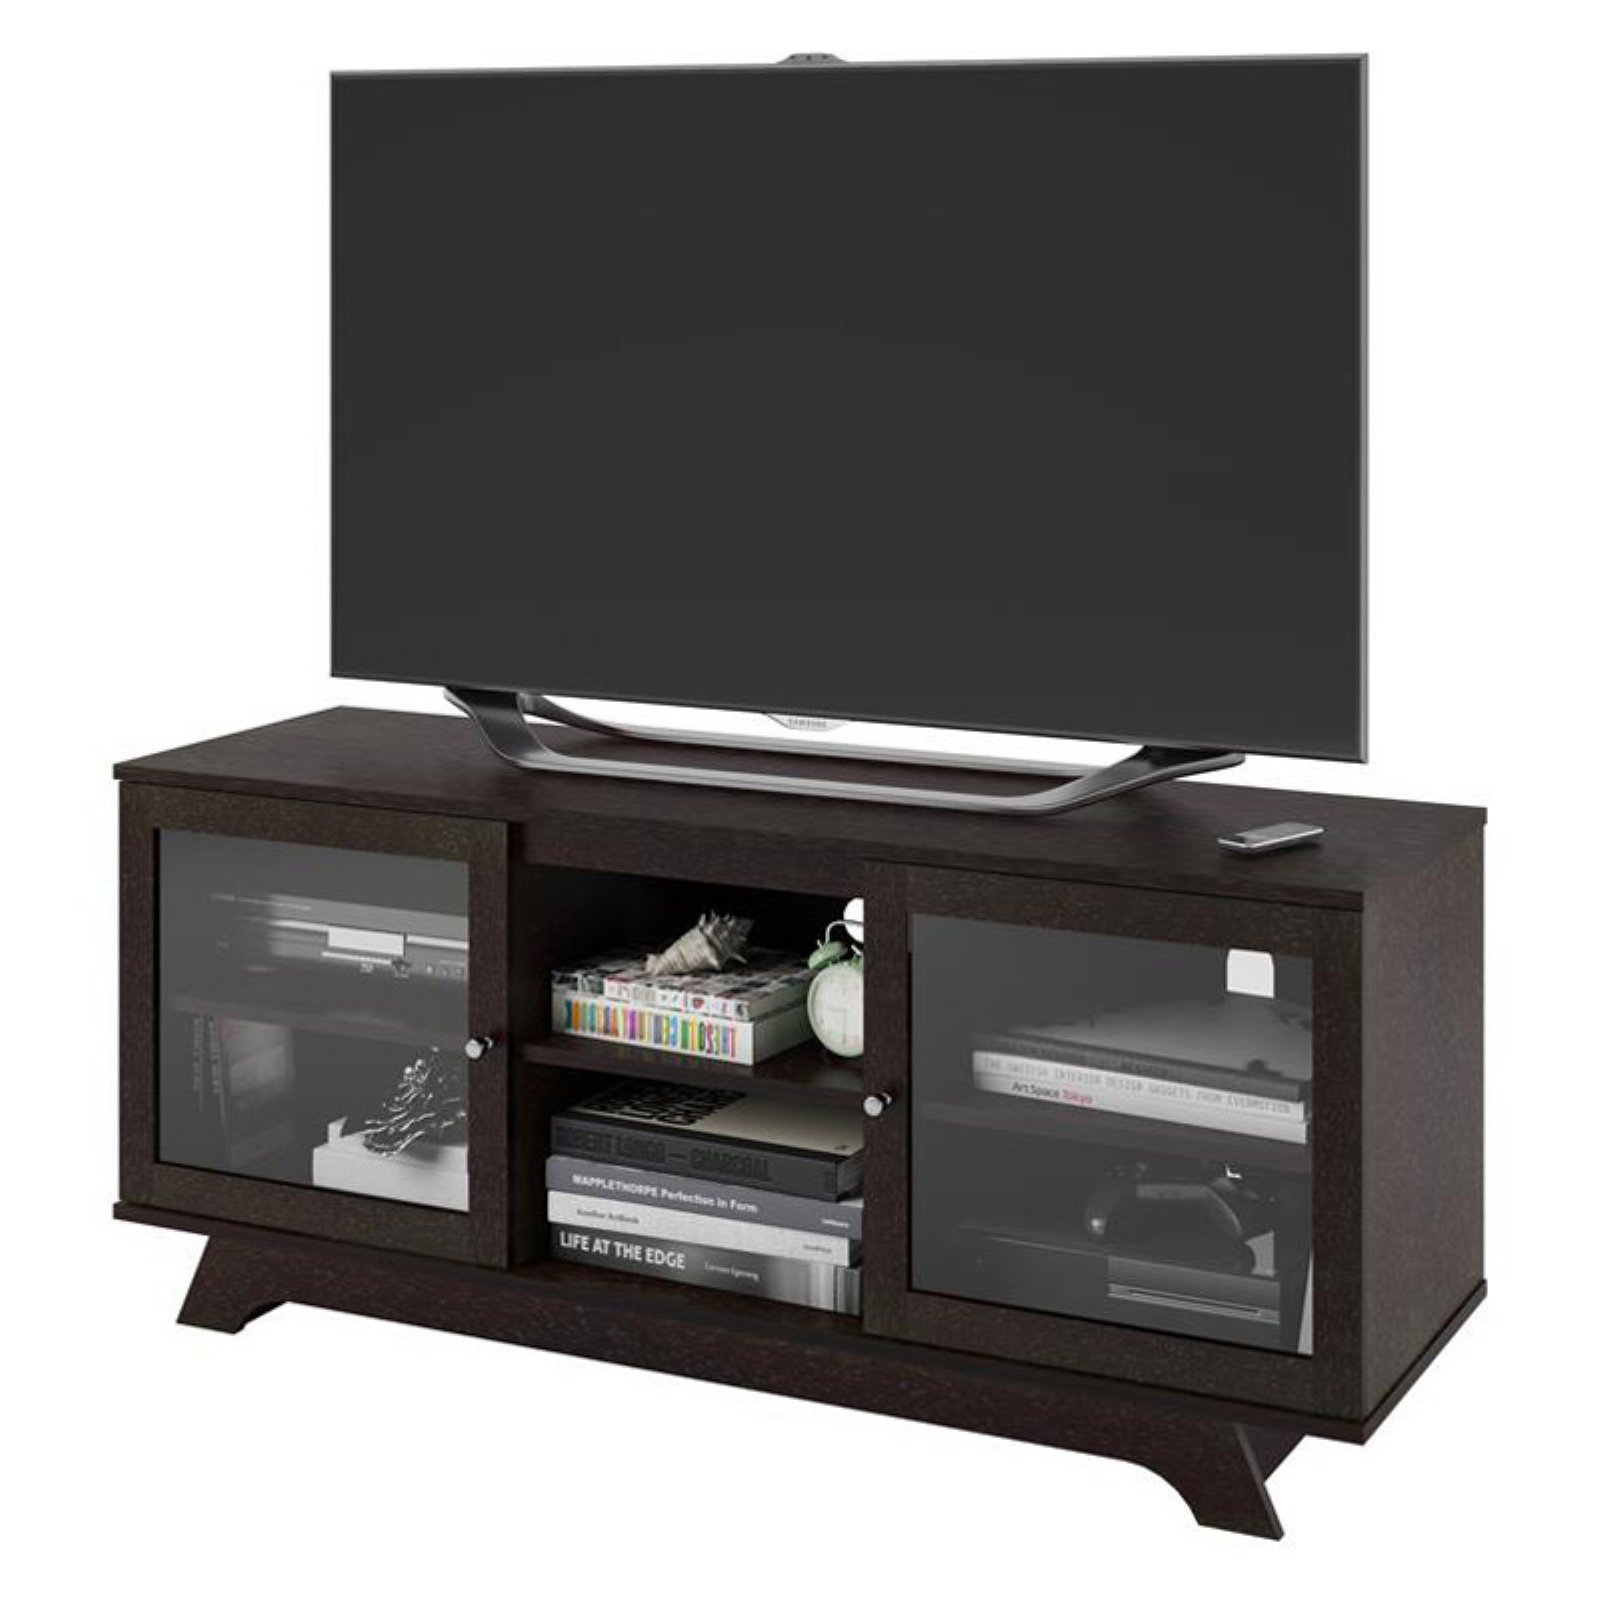 SunTime Outdoor Living Sorento Entertainment Cabinet, Black, 2 Doors/1  Drawer   Walmart.com